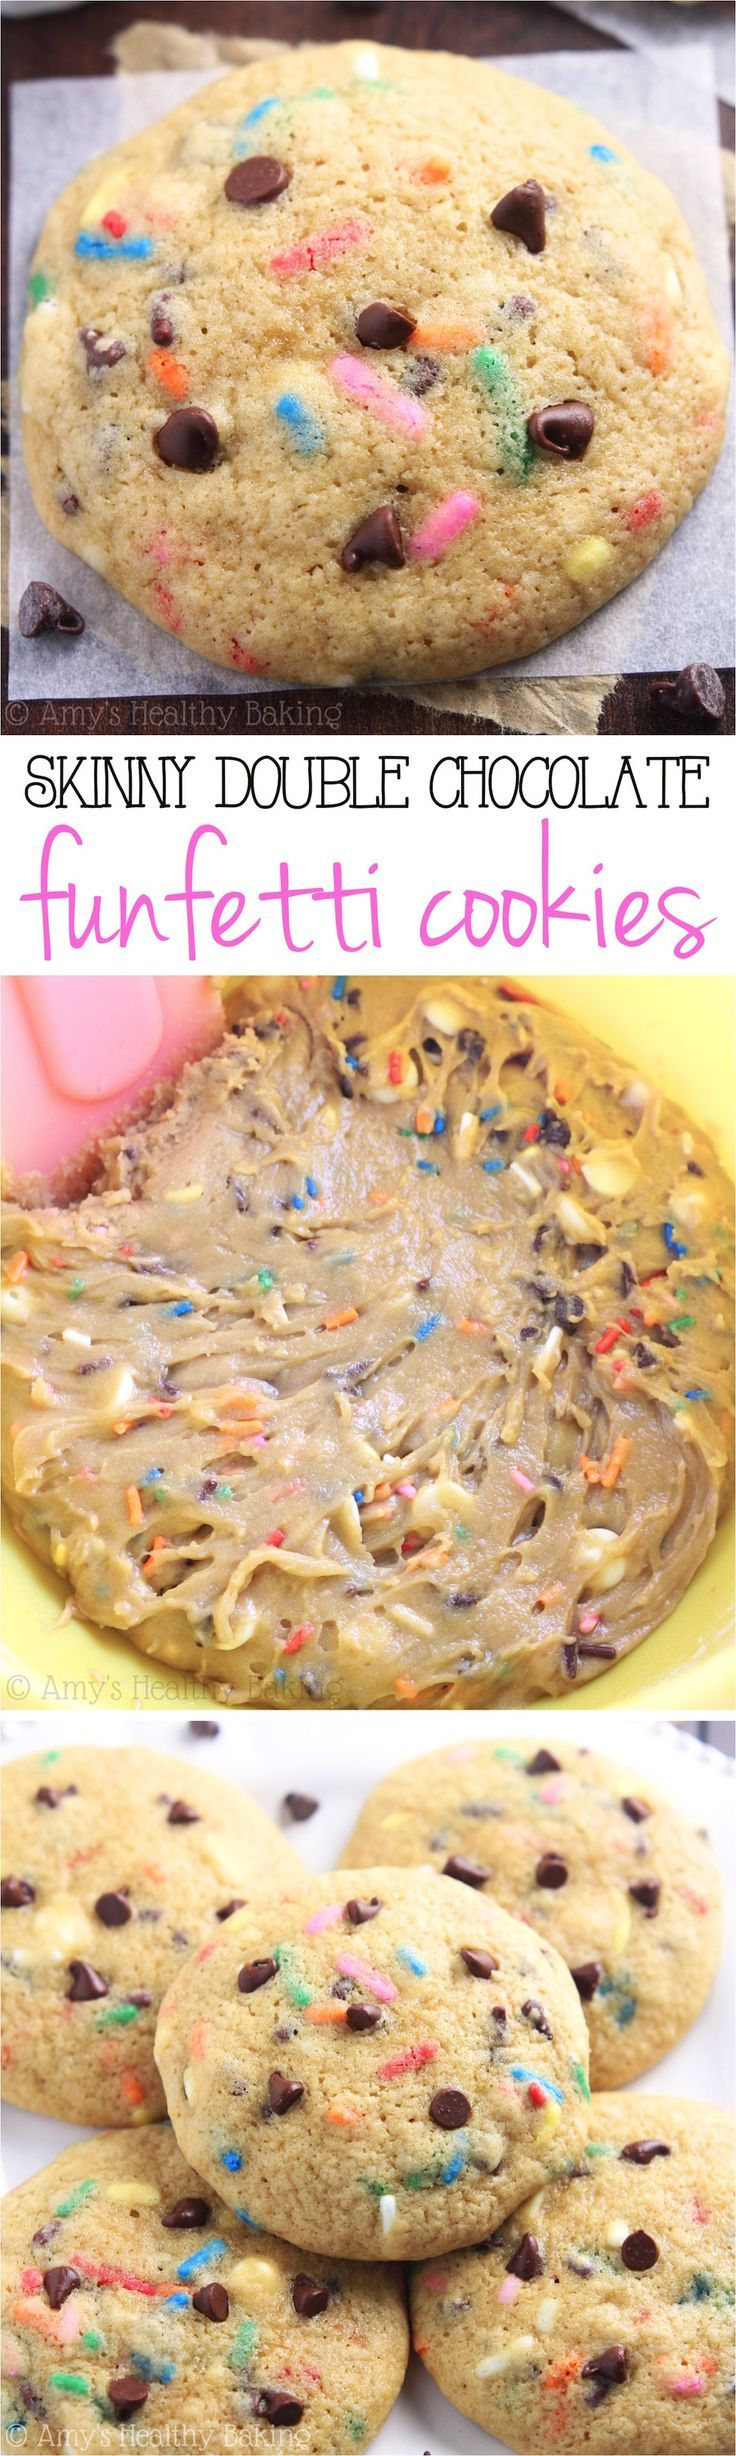 Skinny Double Chocolate Funfetti Cookies -- SO easy & good! Buttery, chewy, chocolaty... My favorite cookie recipe!!